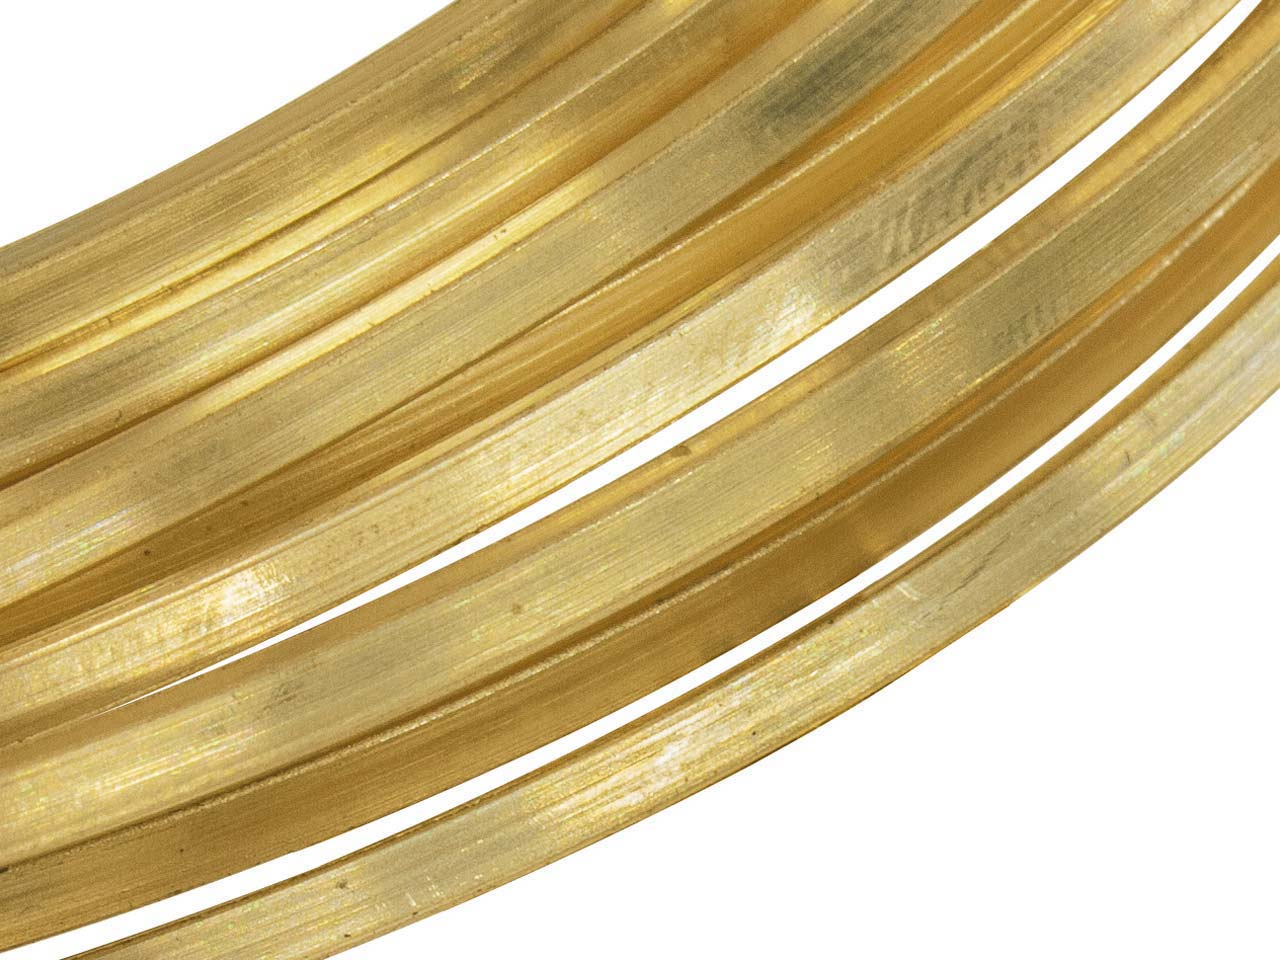 Filo Metallico A Sezione Quadrata Fairtrade Gold, 6 Mm, Df, Oro Giallo Da 9 Ct